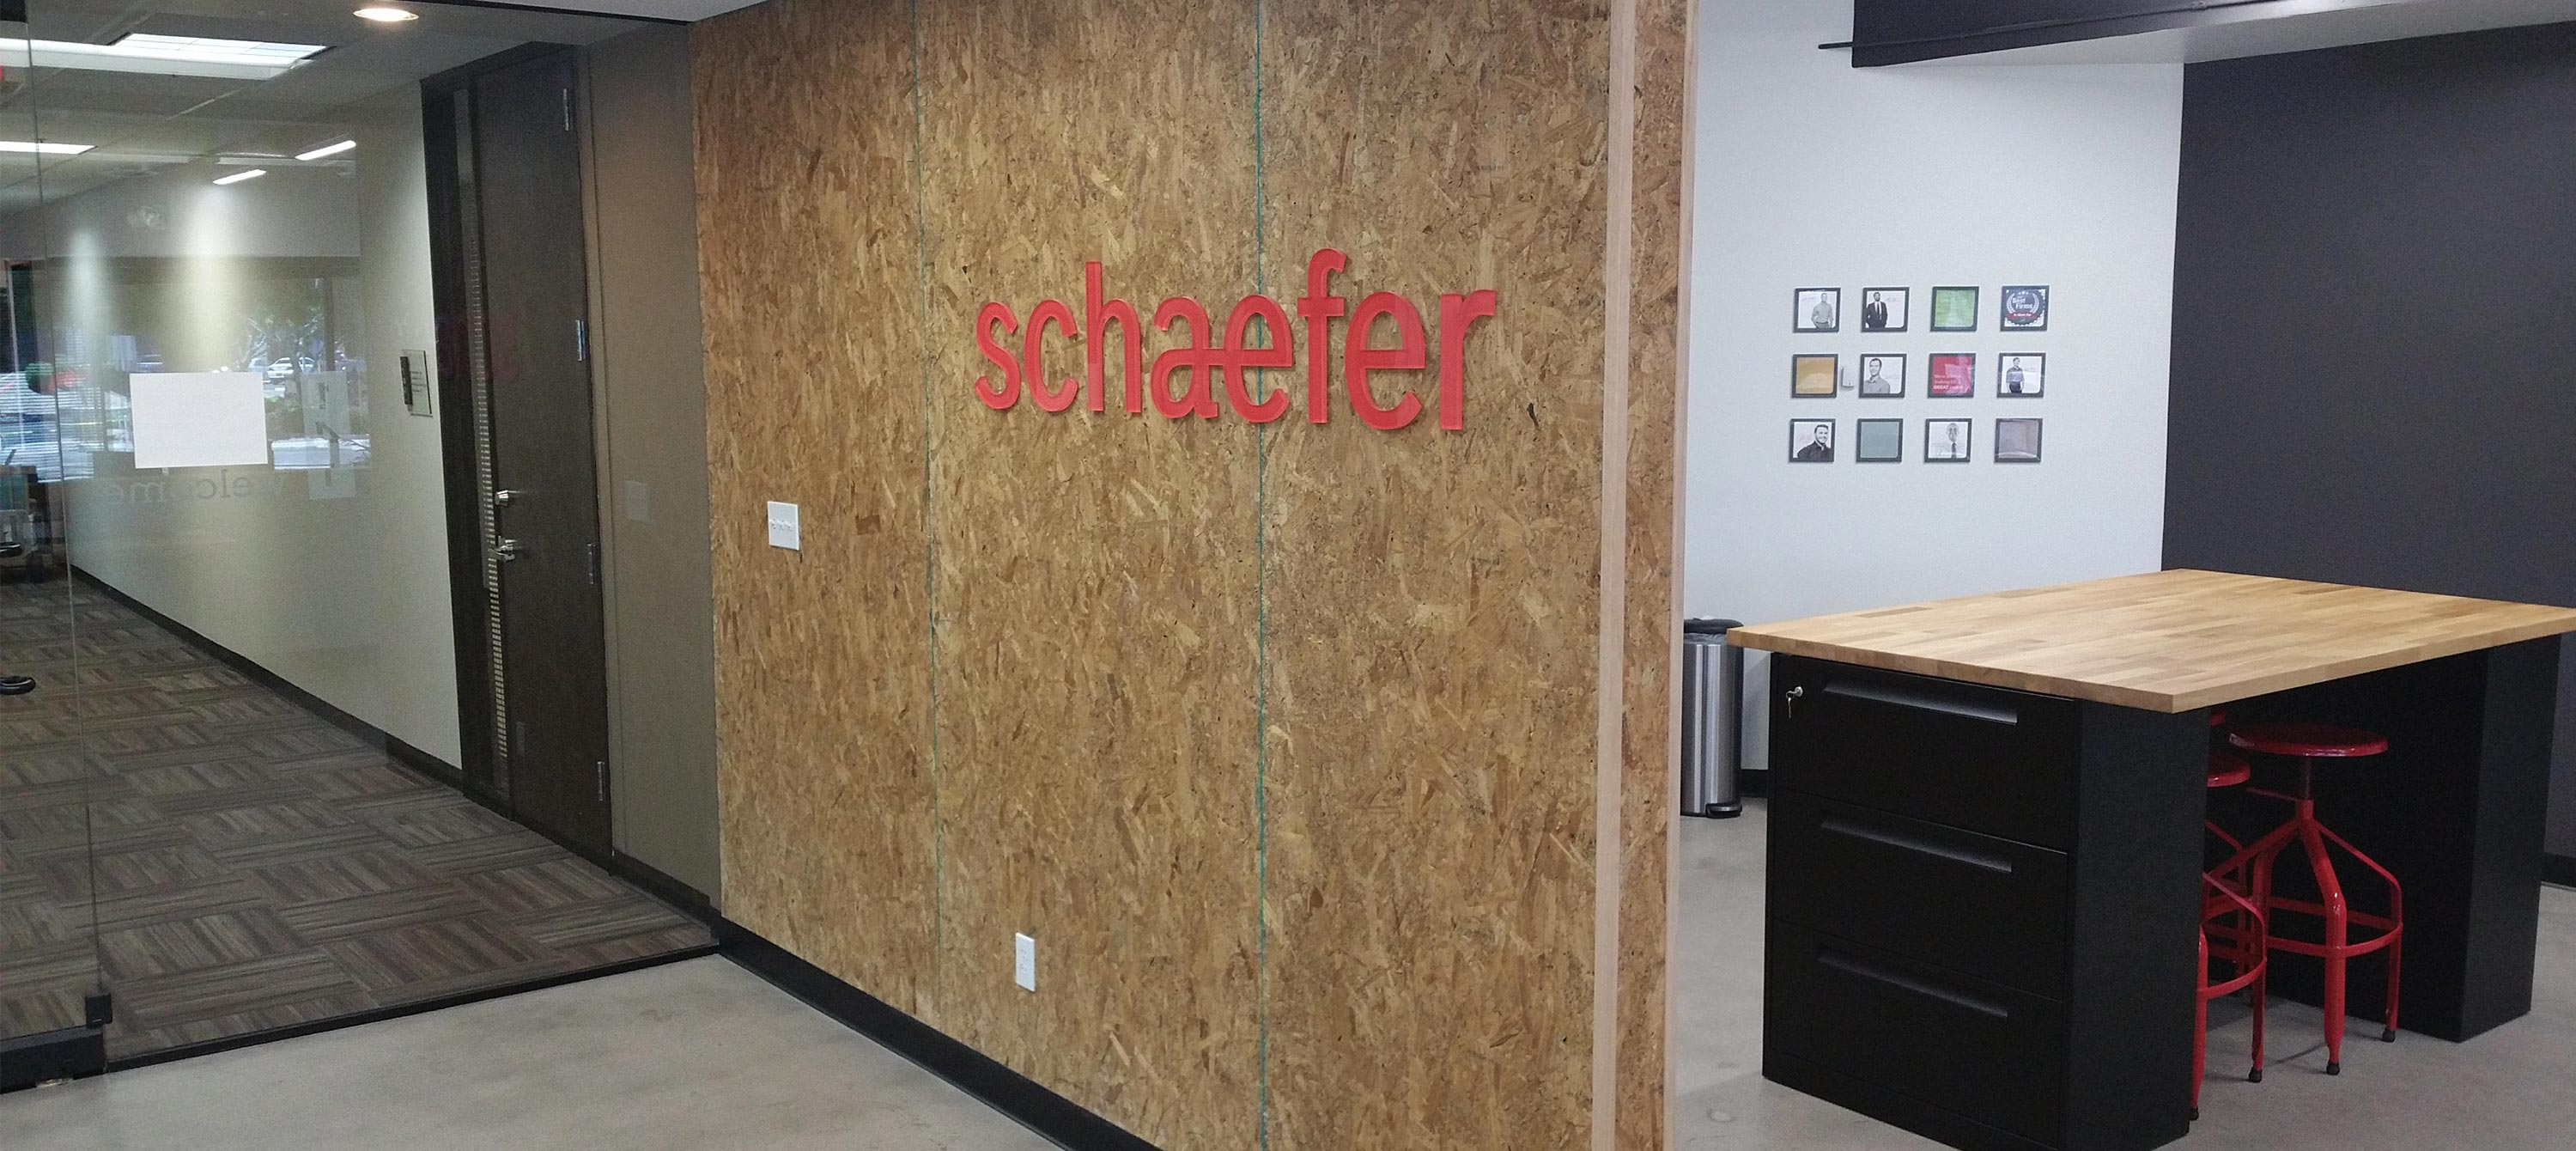 The dimensional graphic installed at the front of the Schaefer Phoenix office.